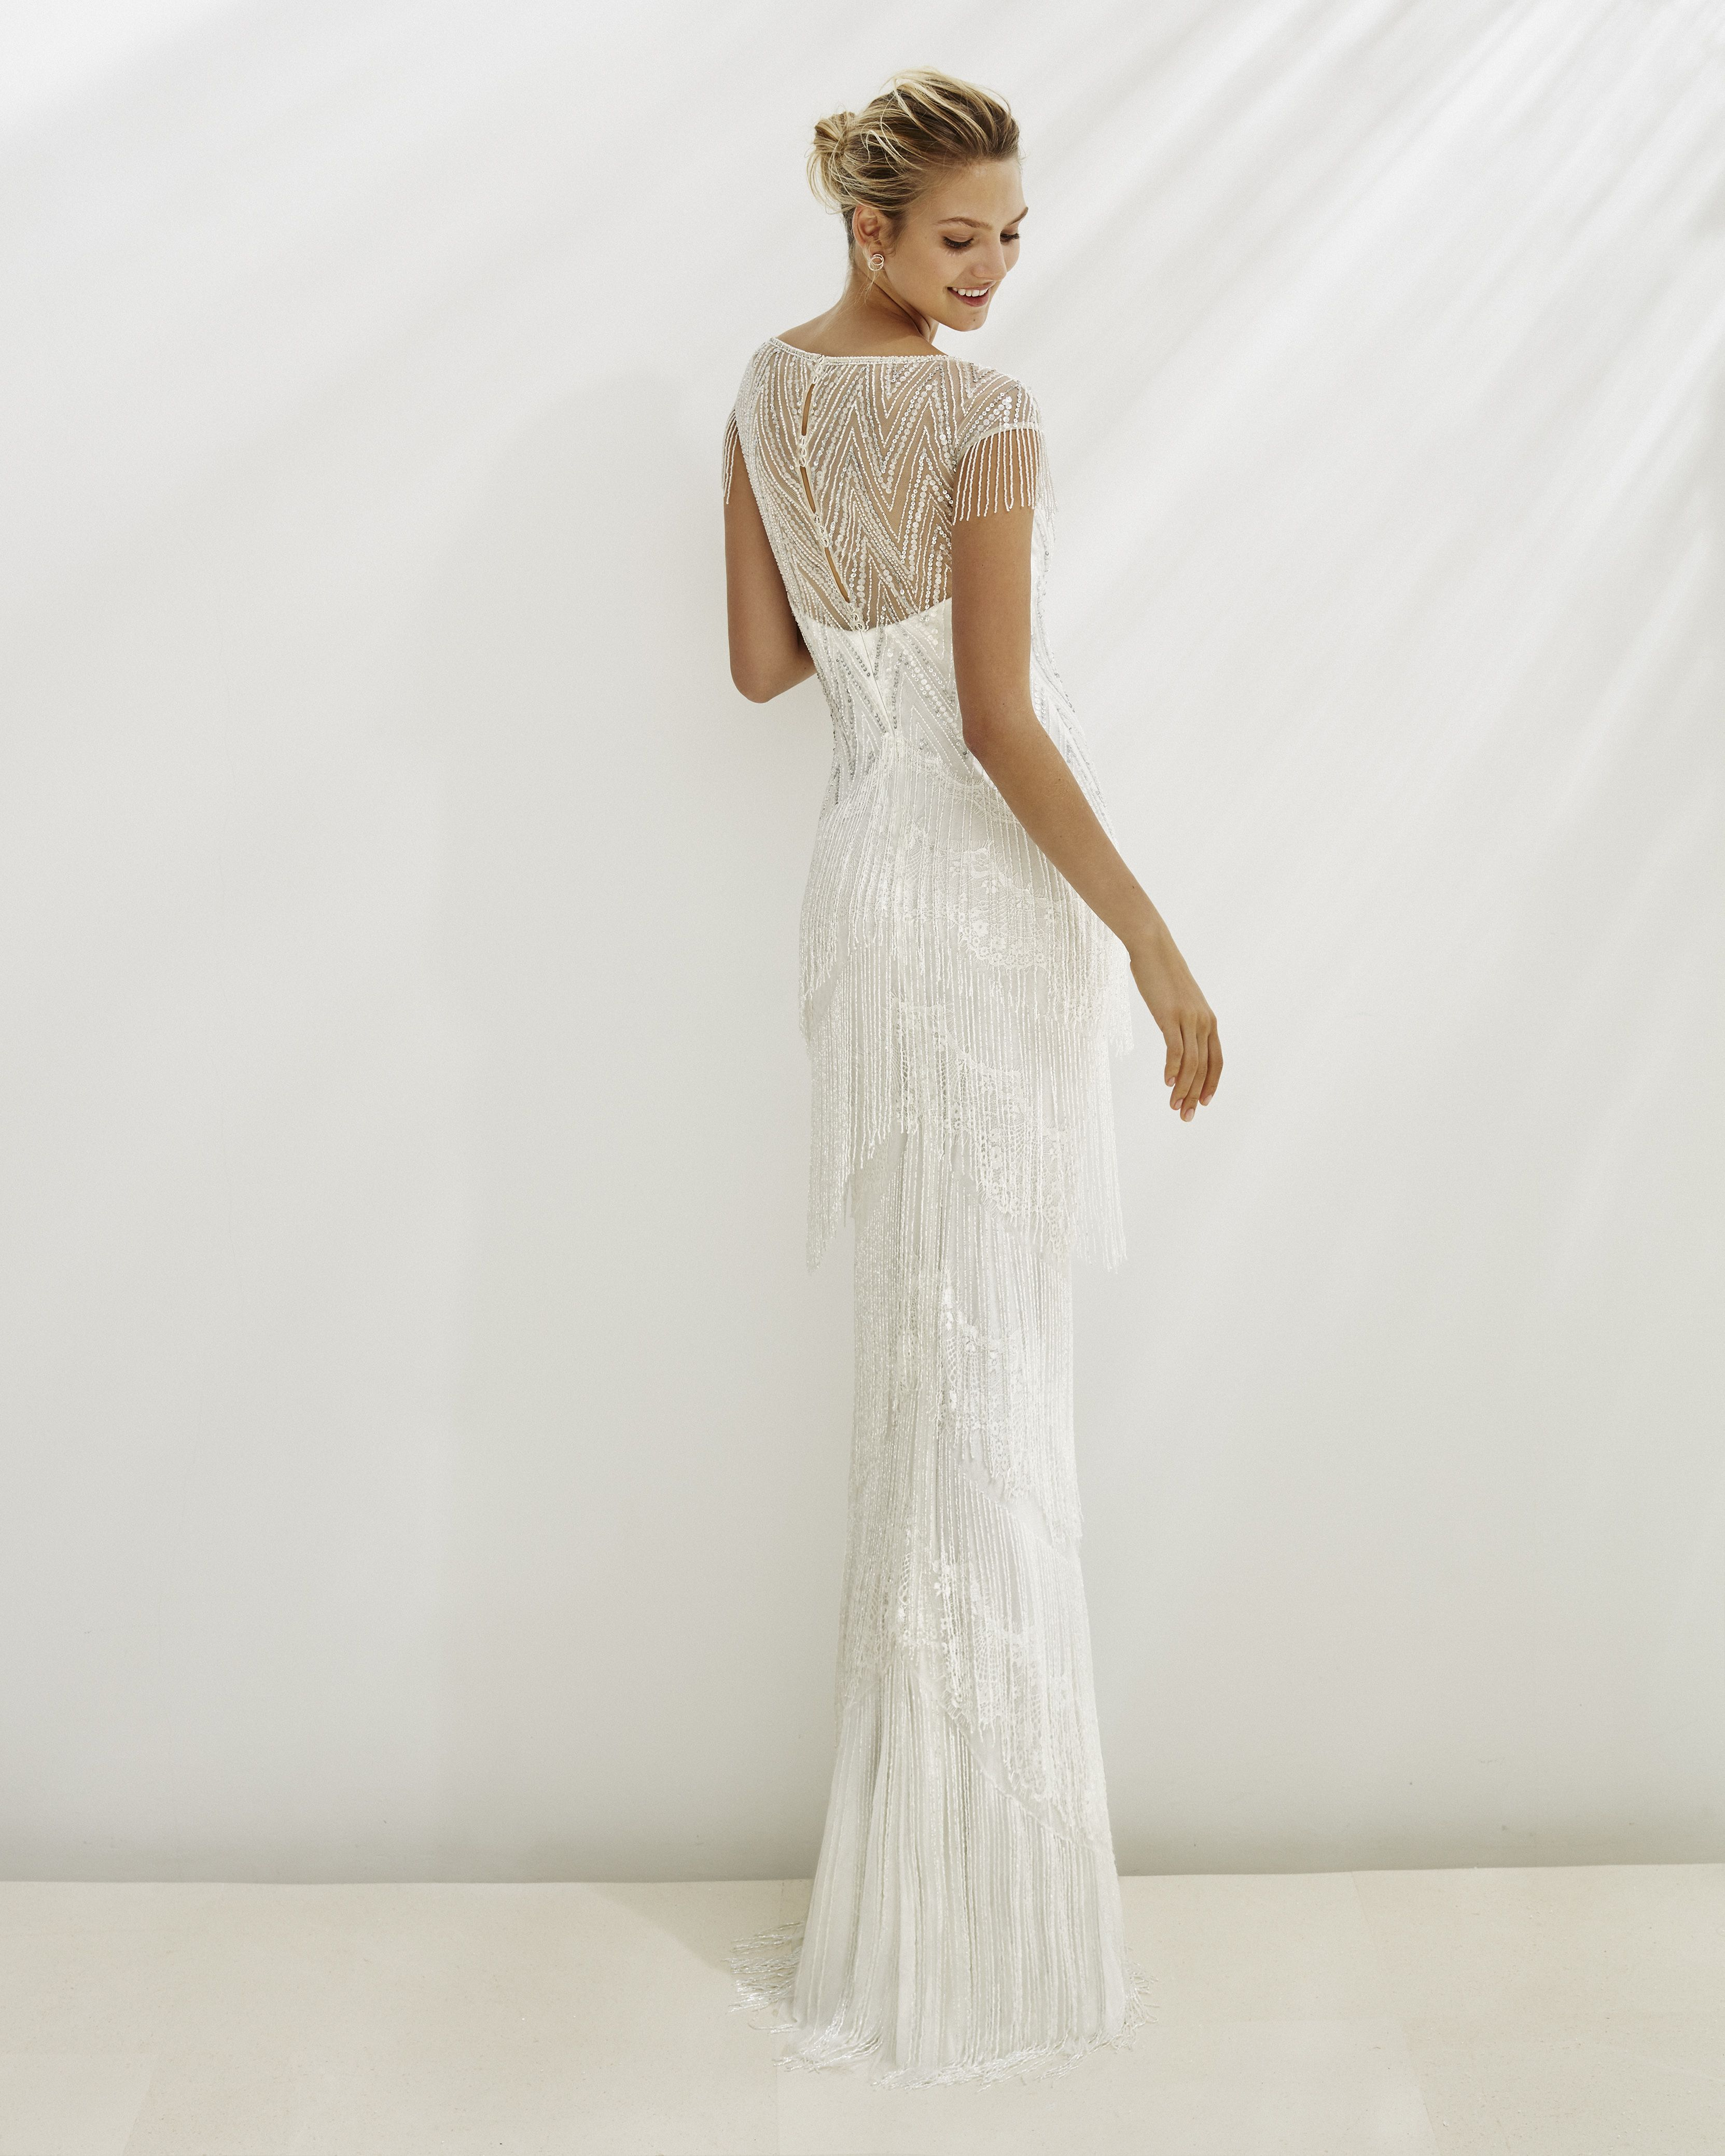 Sheath-style wedding dress in beaded lace. V-neckline and fringe. Available a6d2f4c05dbb